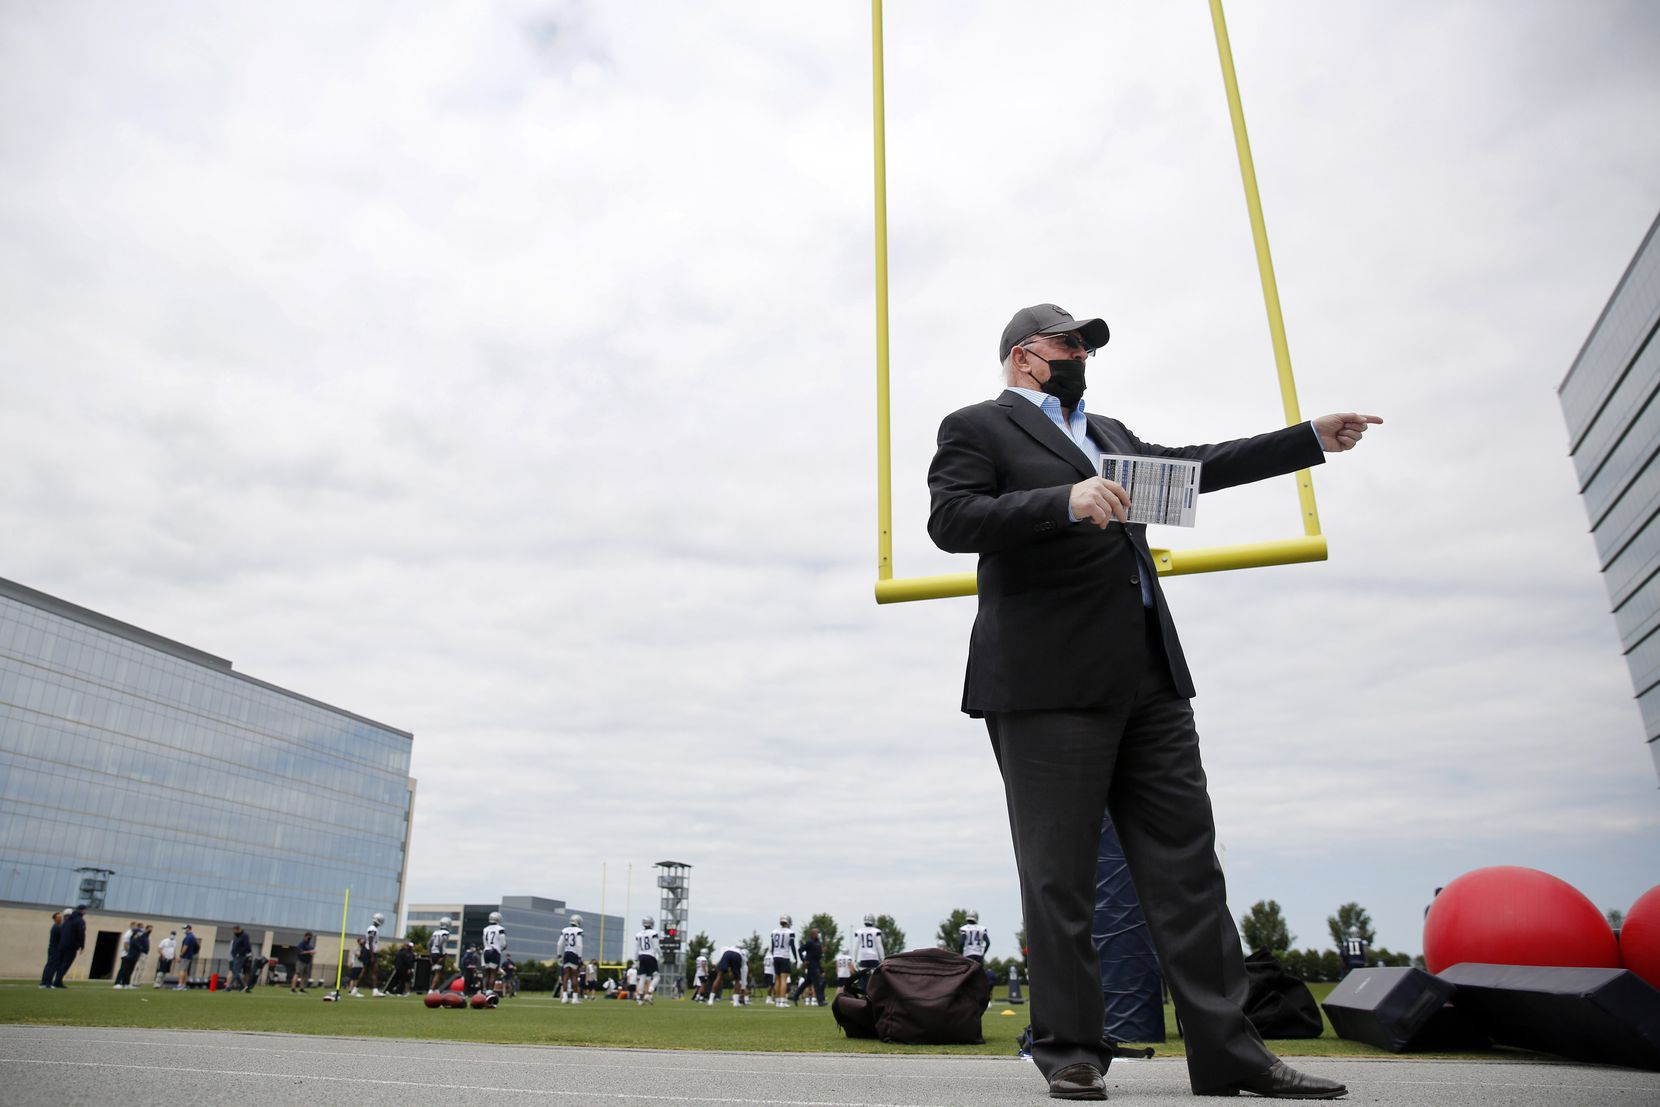 Before rookie minicamp began, Dallas Cowboys owner Jerry Jones came over to update the media on new COVID-19 protocols at the The Star in Frisco, Texas, Friday, May 14, 2021. He is fully vaccinated and encourages everyone to get vaccinated as well. Masks will be optional at The Star. (Tom Fox/The Dallas Morning News)